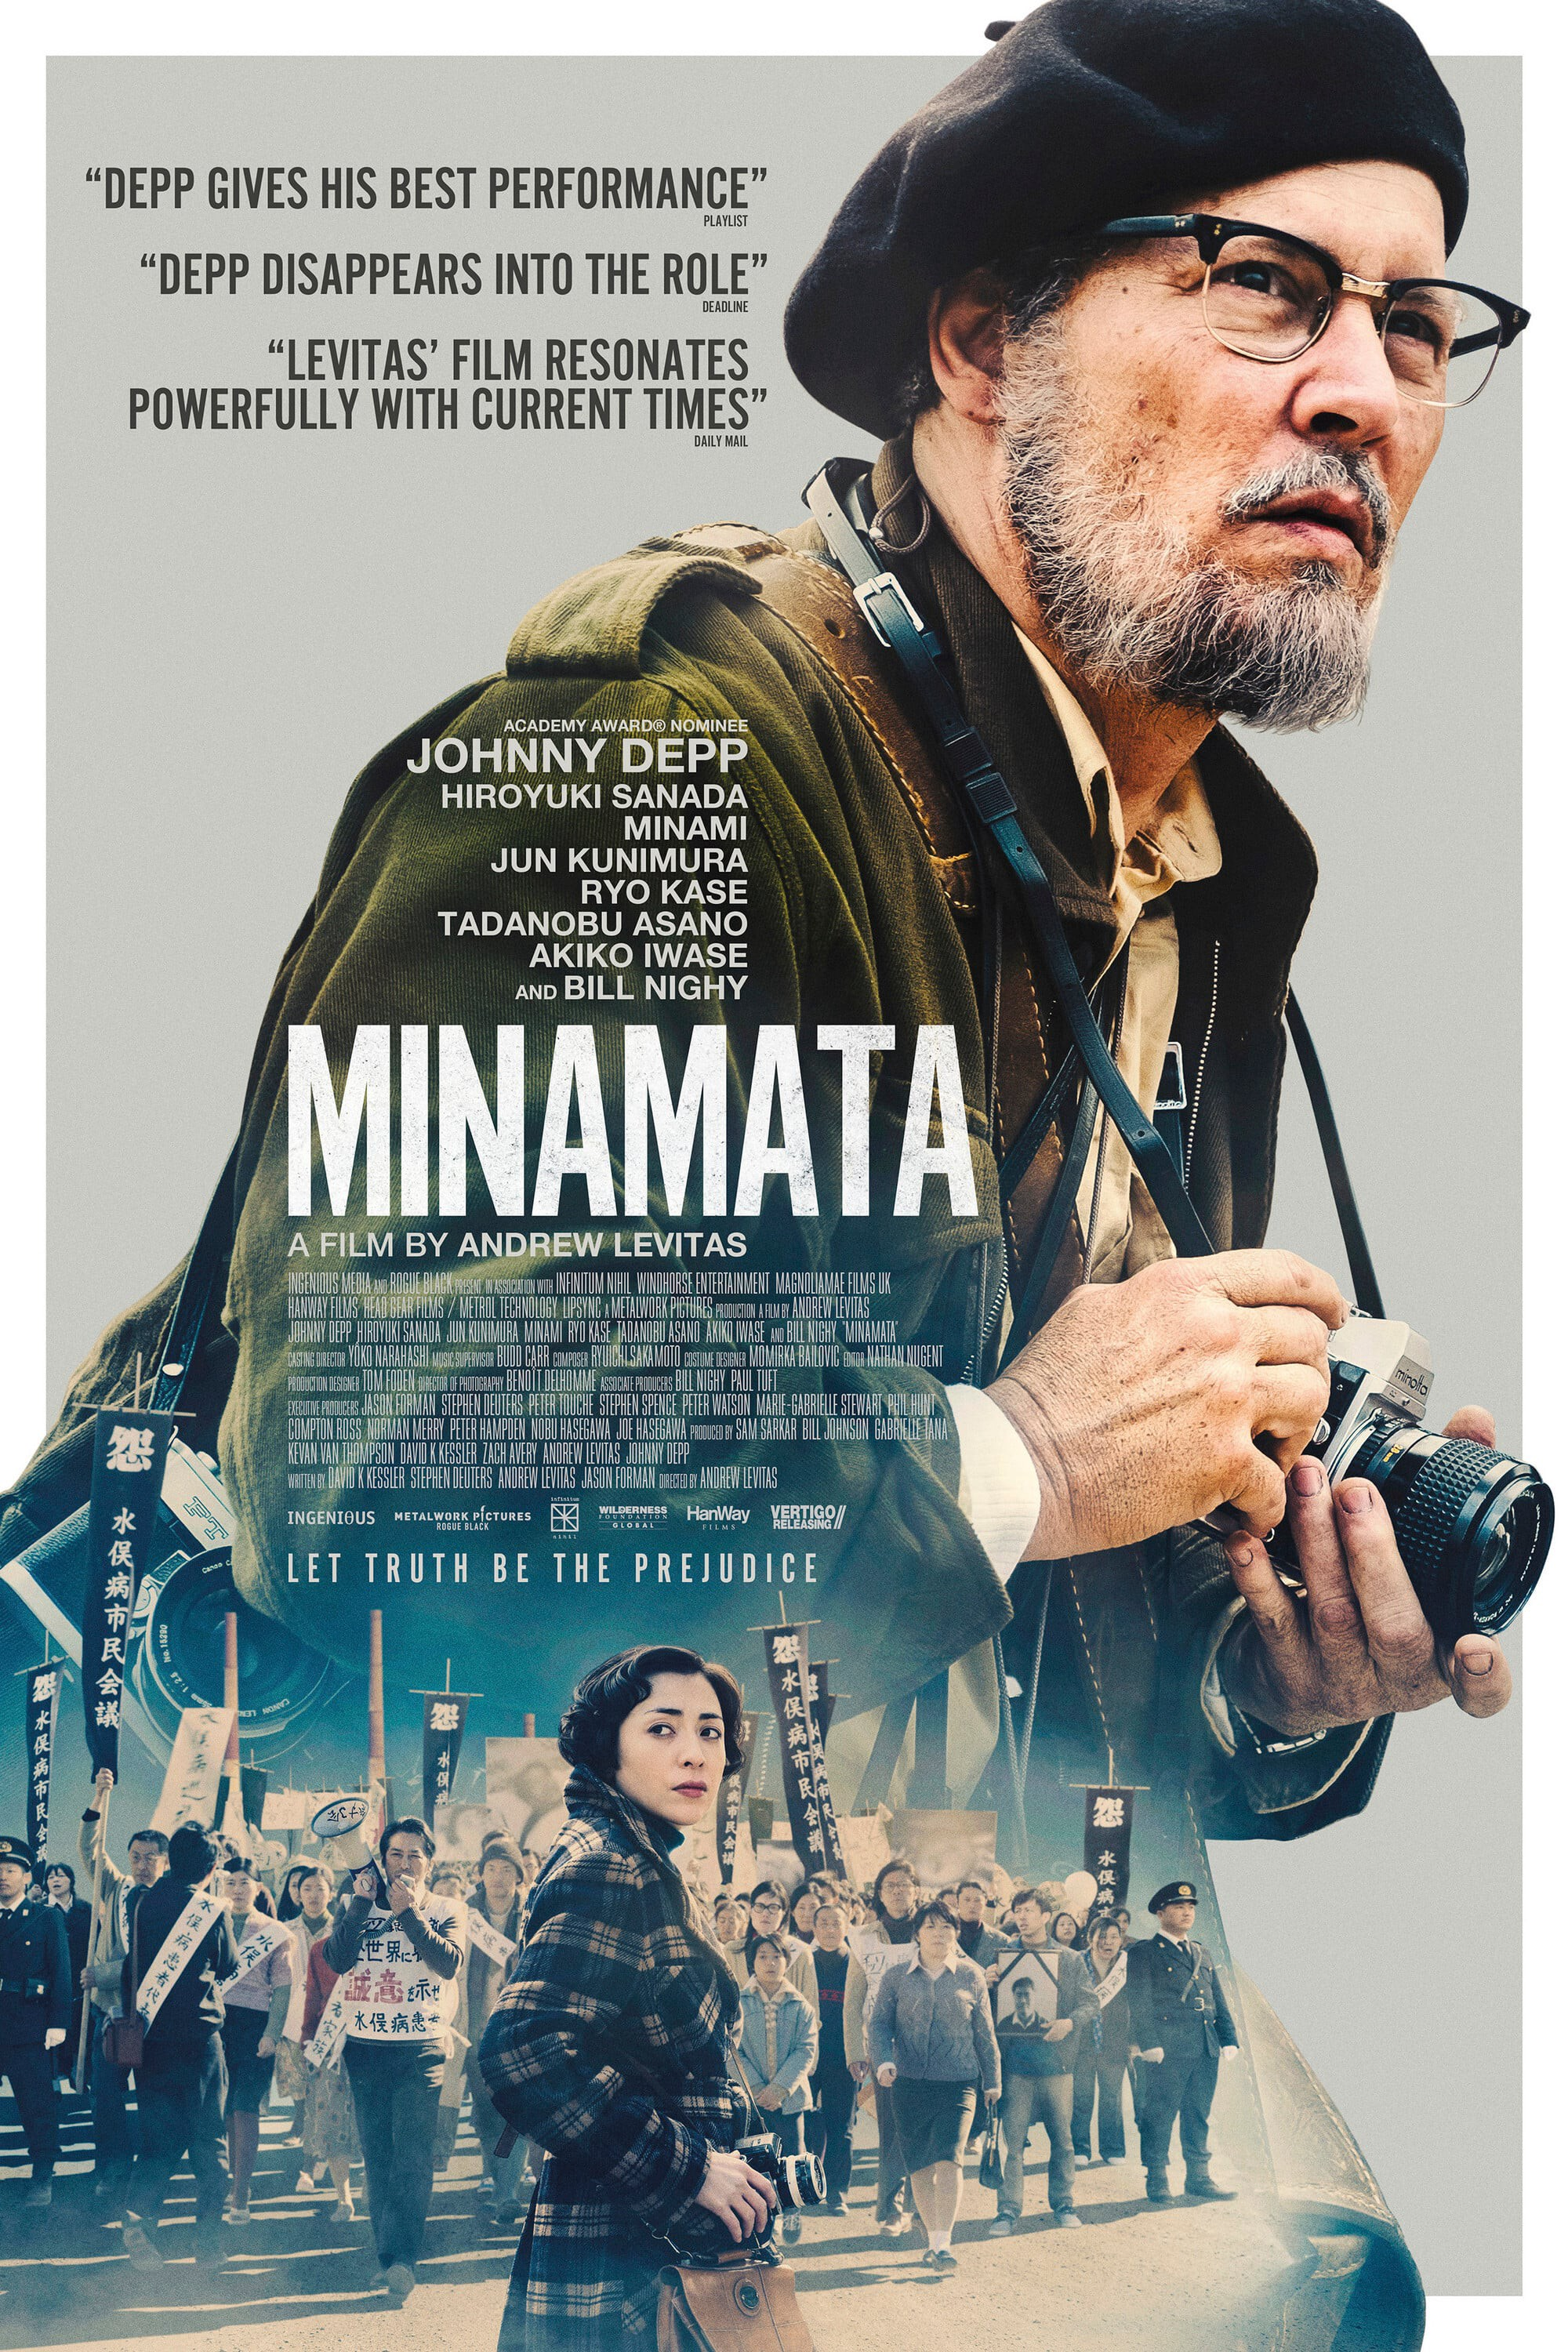 Streaming Ita Minamata 2021 Film Completo In Linea Cineblog Uscita Italia By Ka Yahiam Film Completo Italiano Minamata 2021 Film Hd Streaming Ita Altadefinizione Feb 2021 Medium